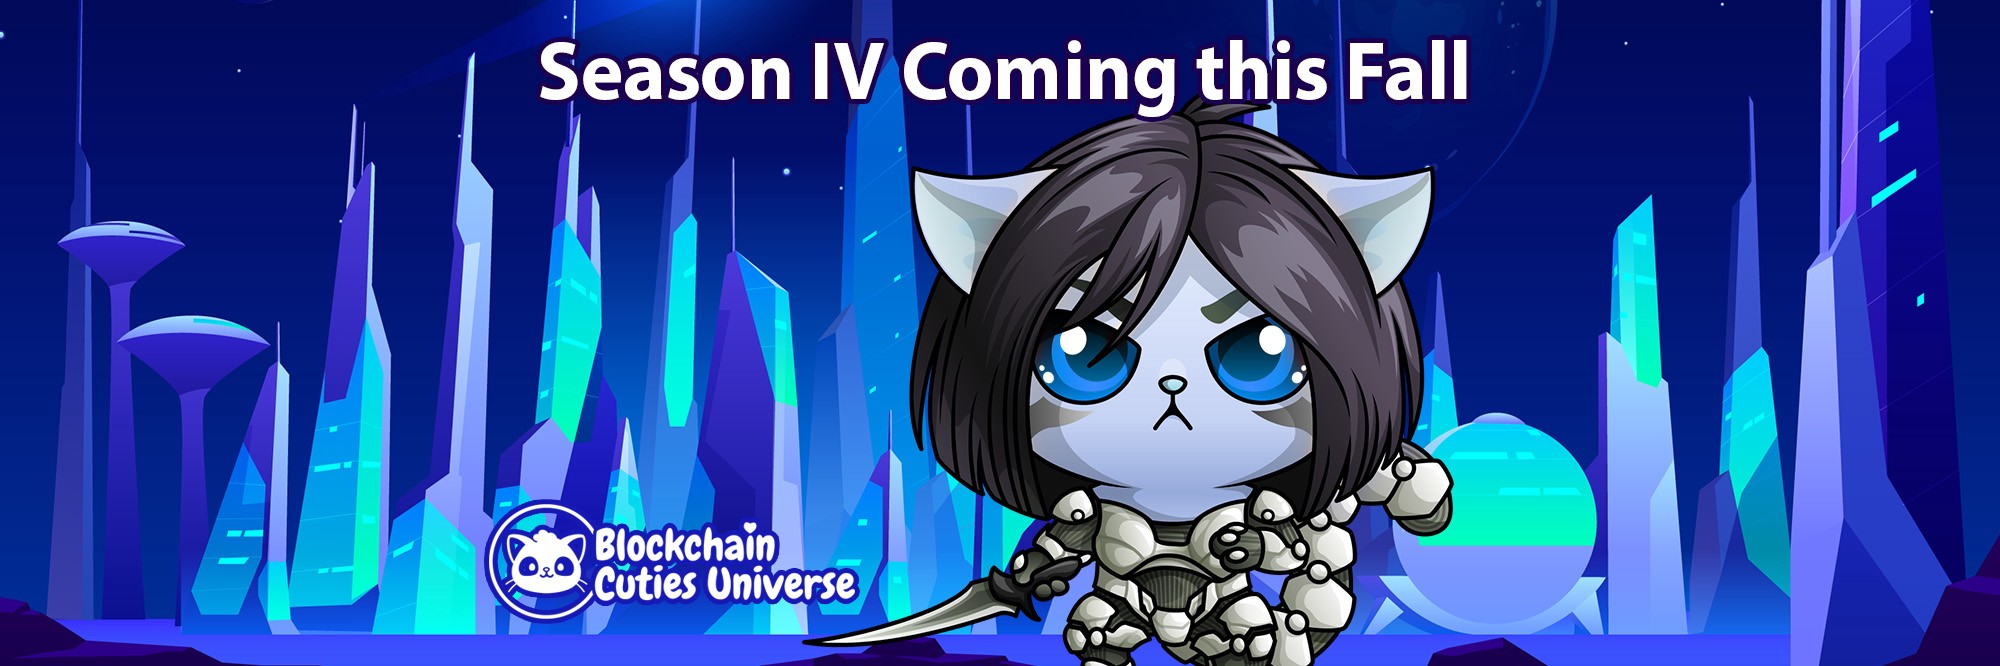 Season IV Coming to Cutieland this Fall